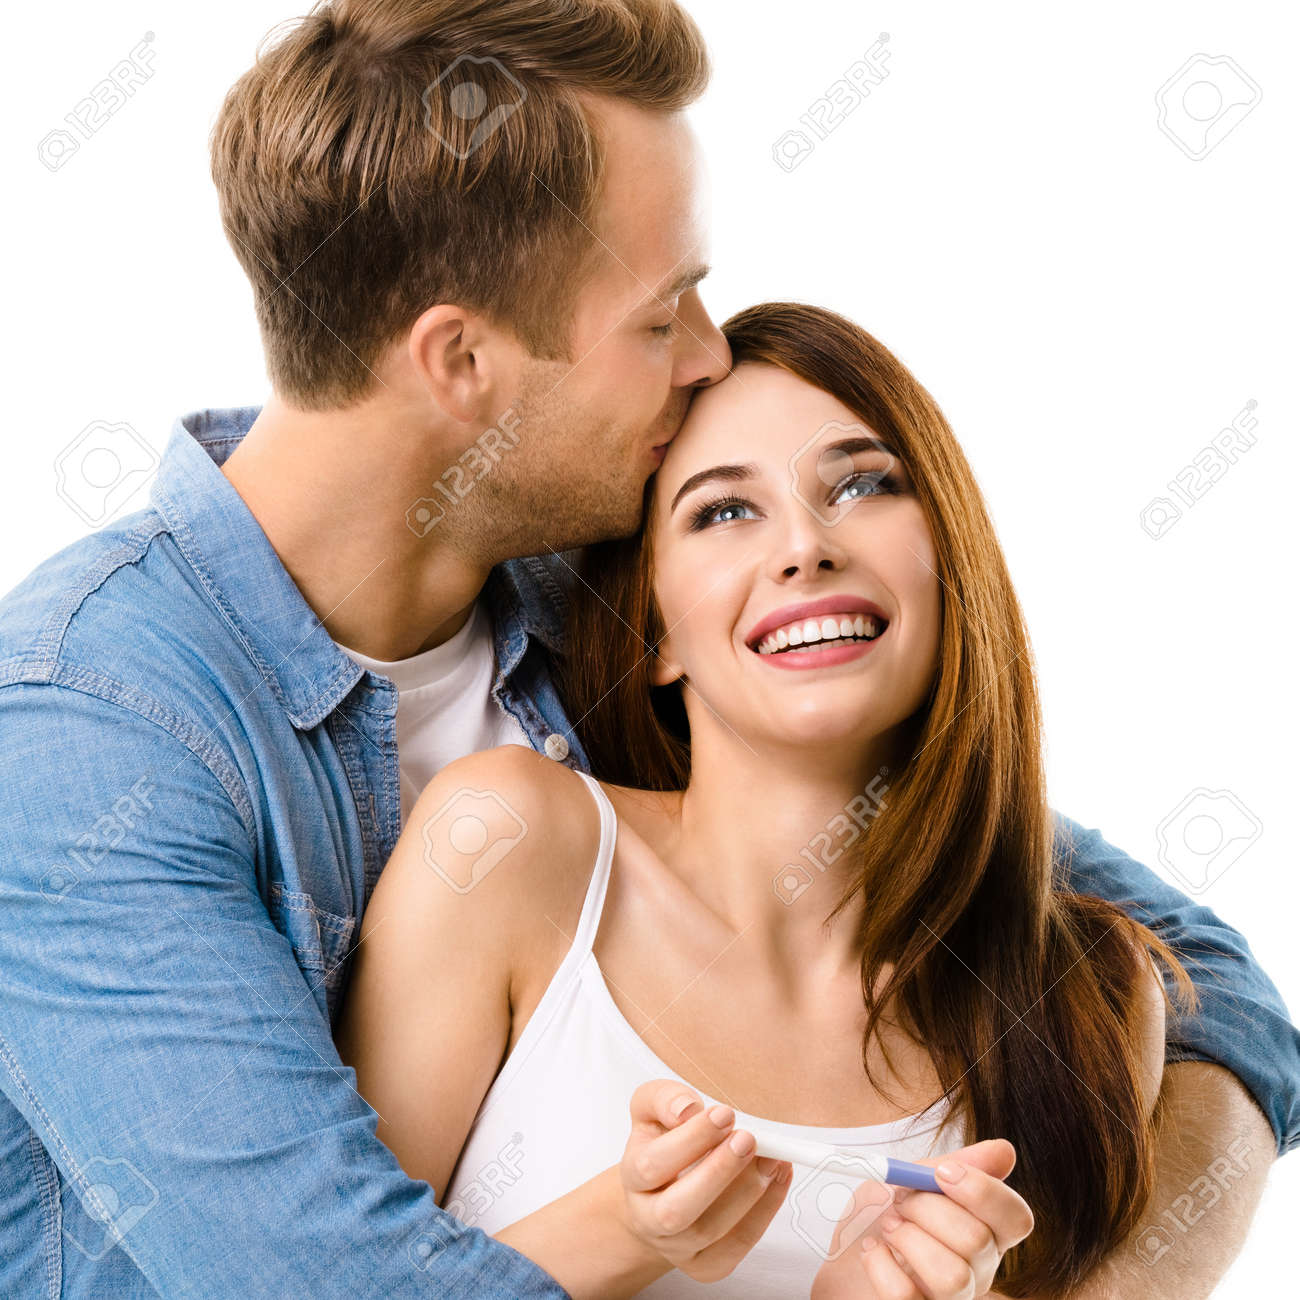 Young couple, finding out results of a pregnancy test. Caucasian models - in love, relationship, dating, happy lovers, family concept, cut out on white background. Square. - 172034744